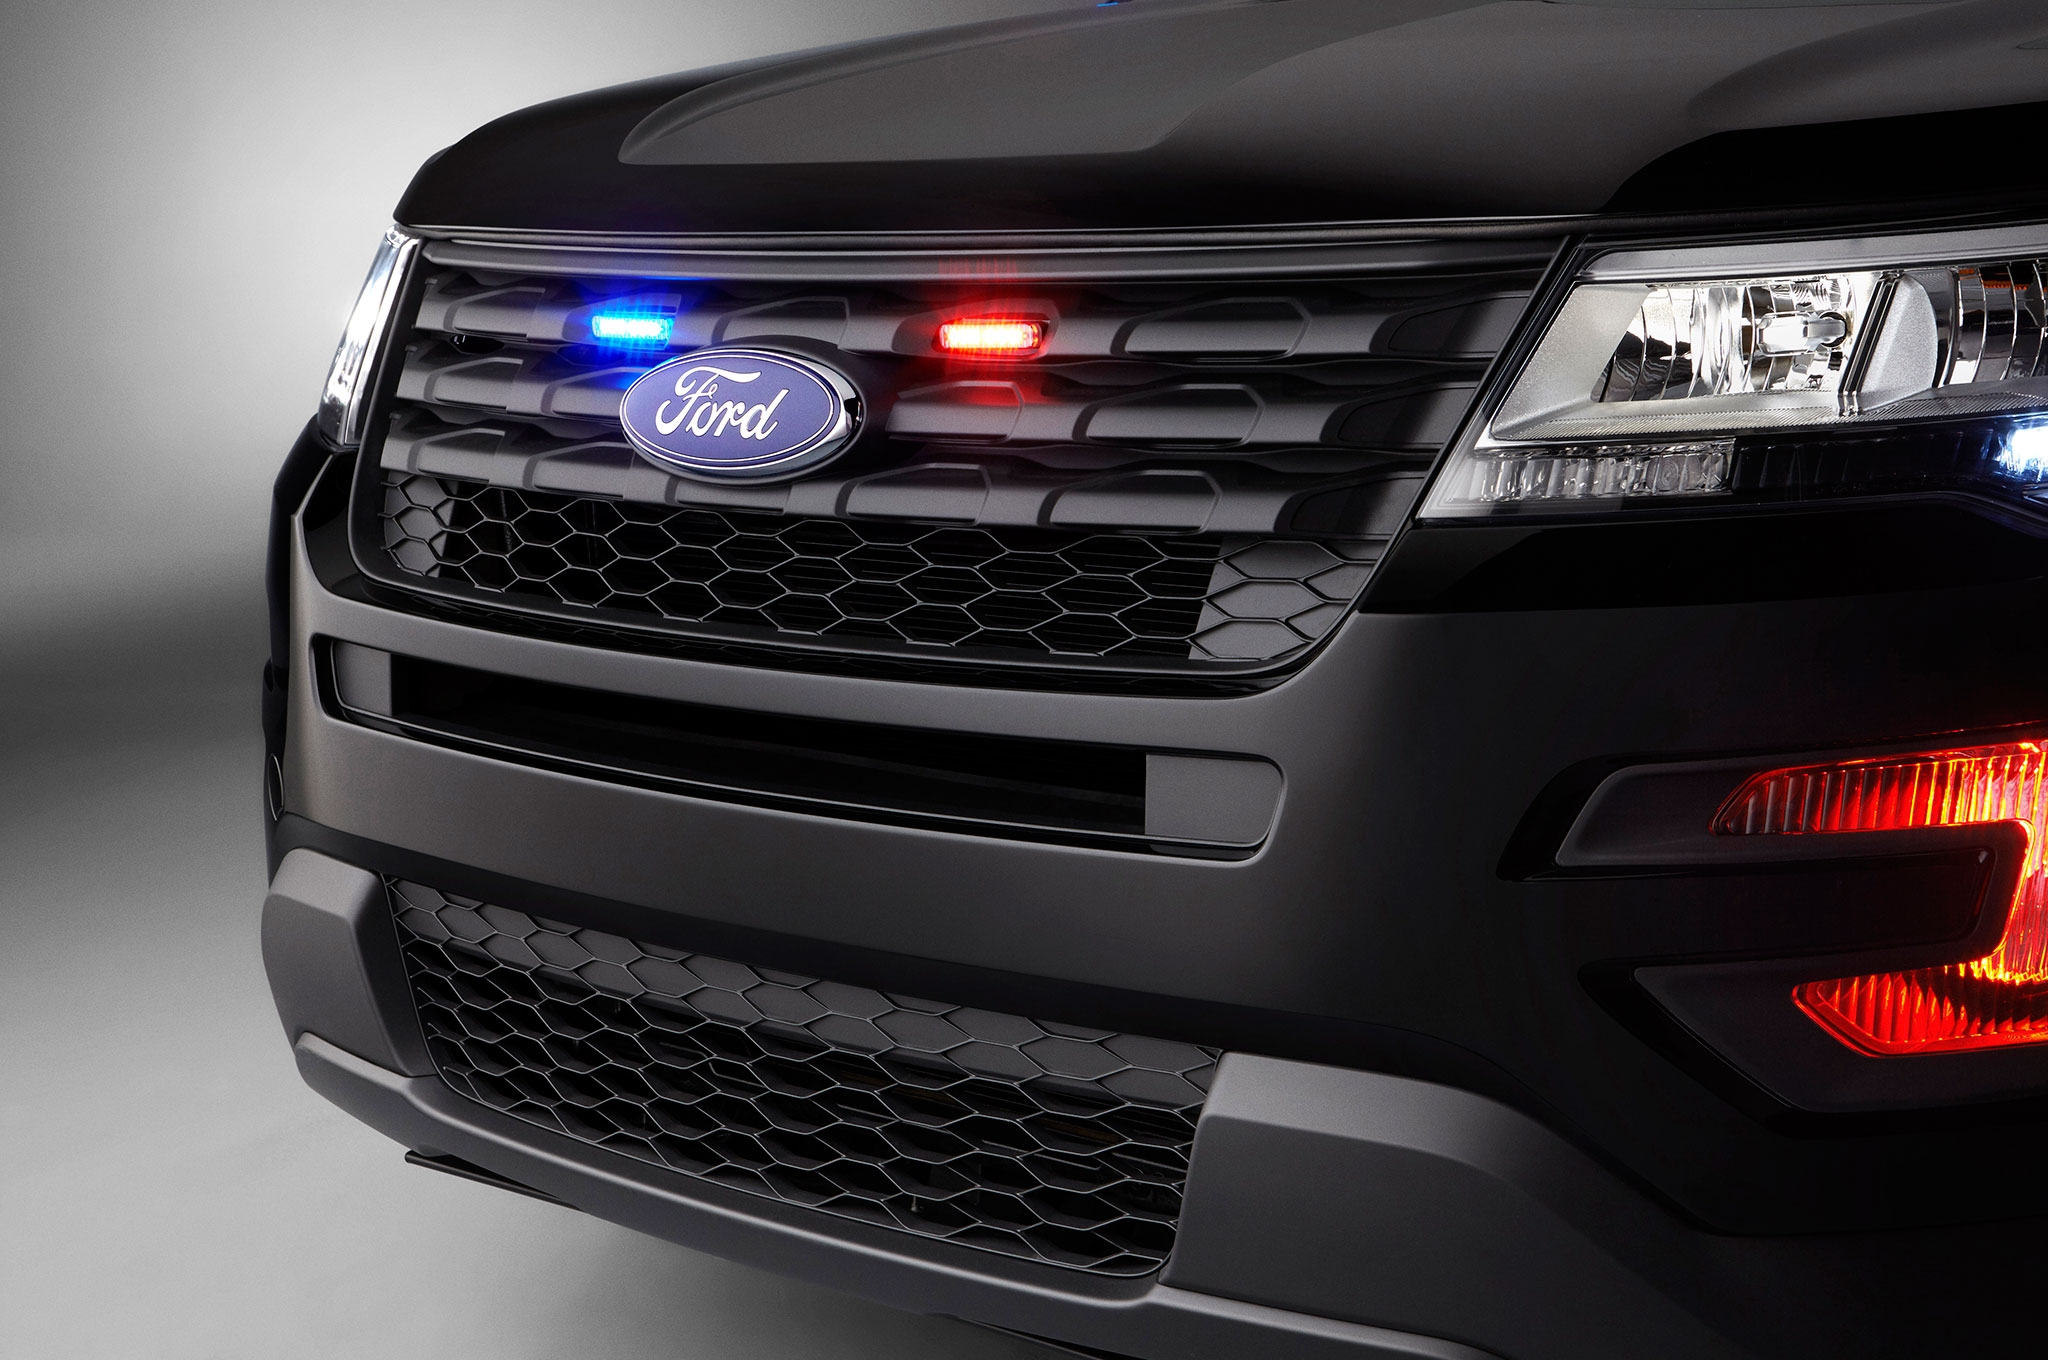 Updated 2016 Ford Police Interceptor Utility Debuts in Chicago